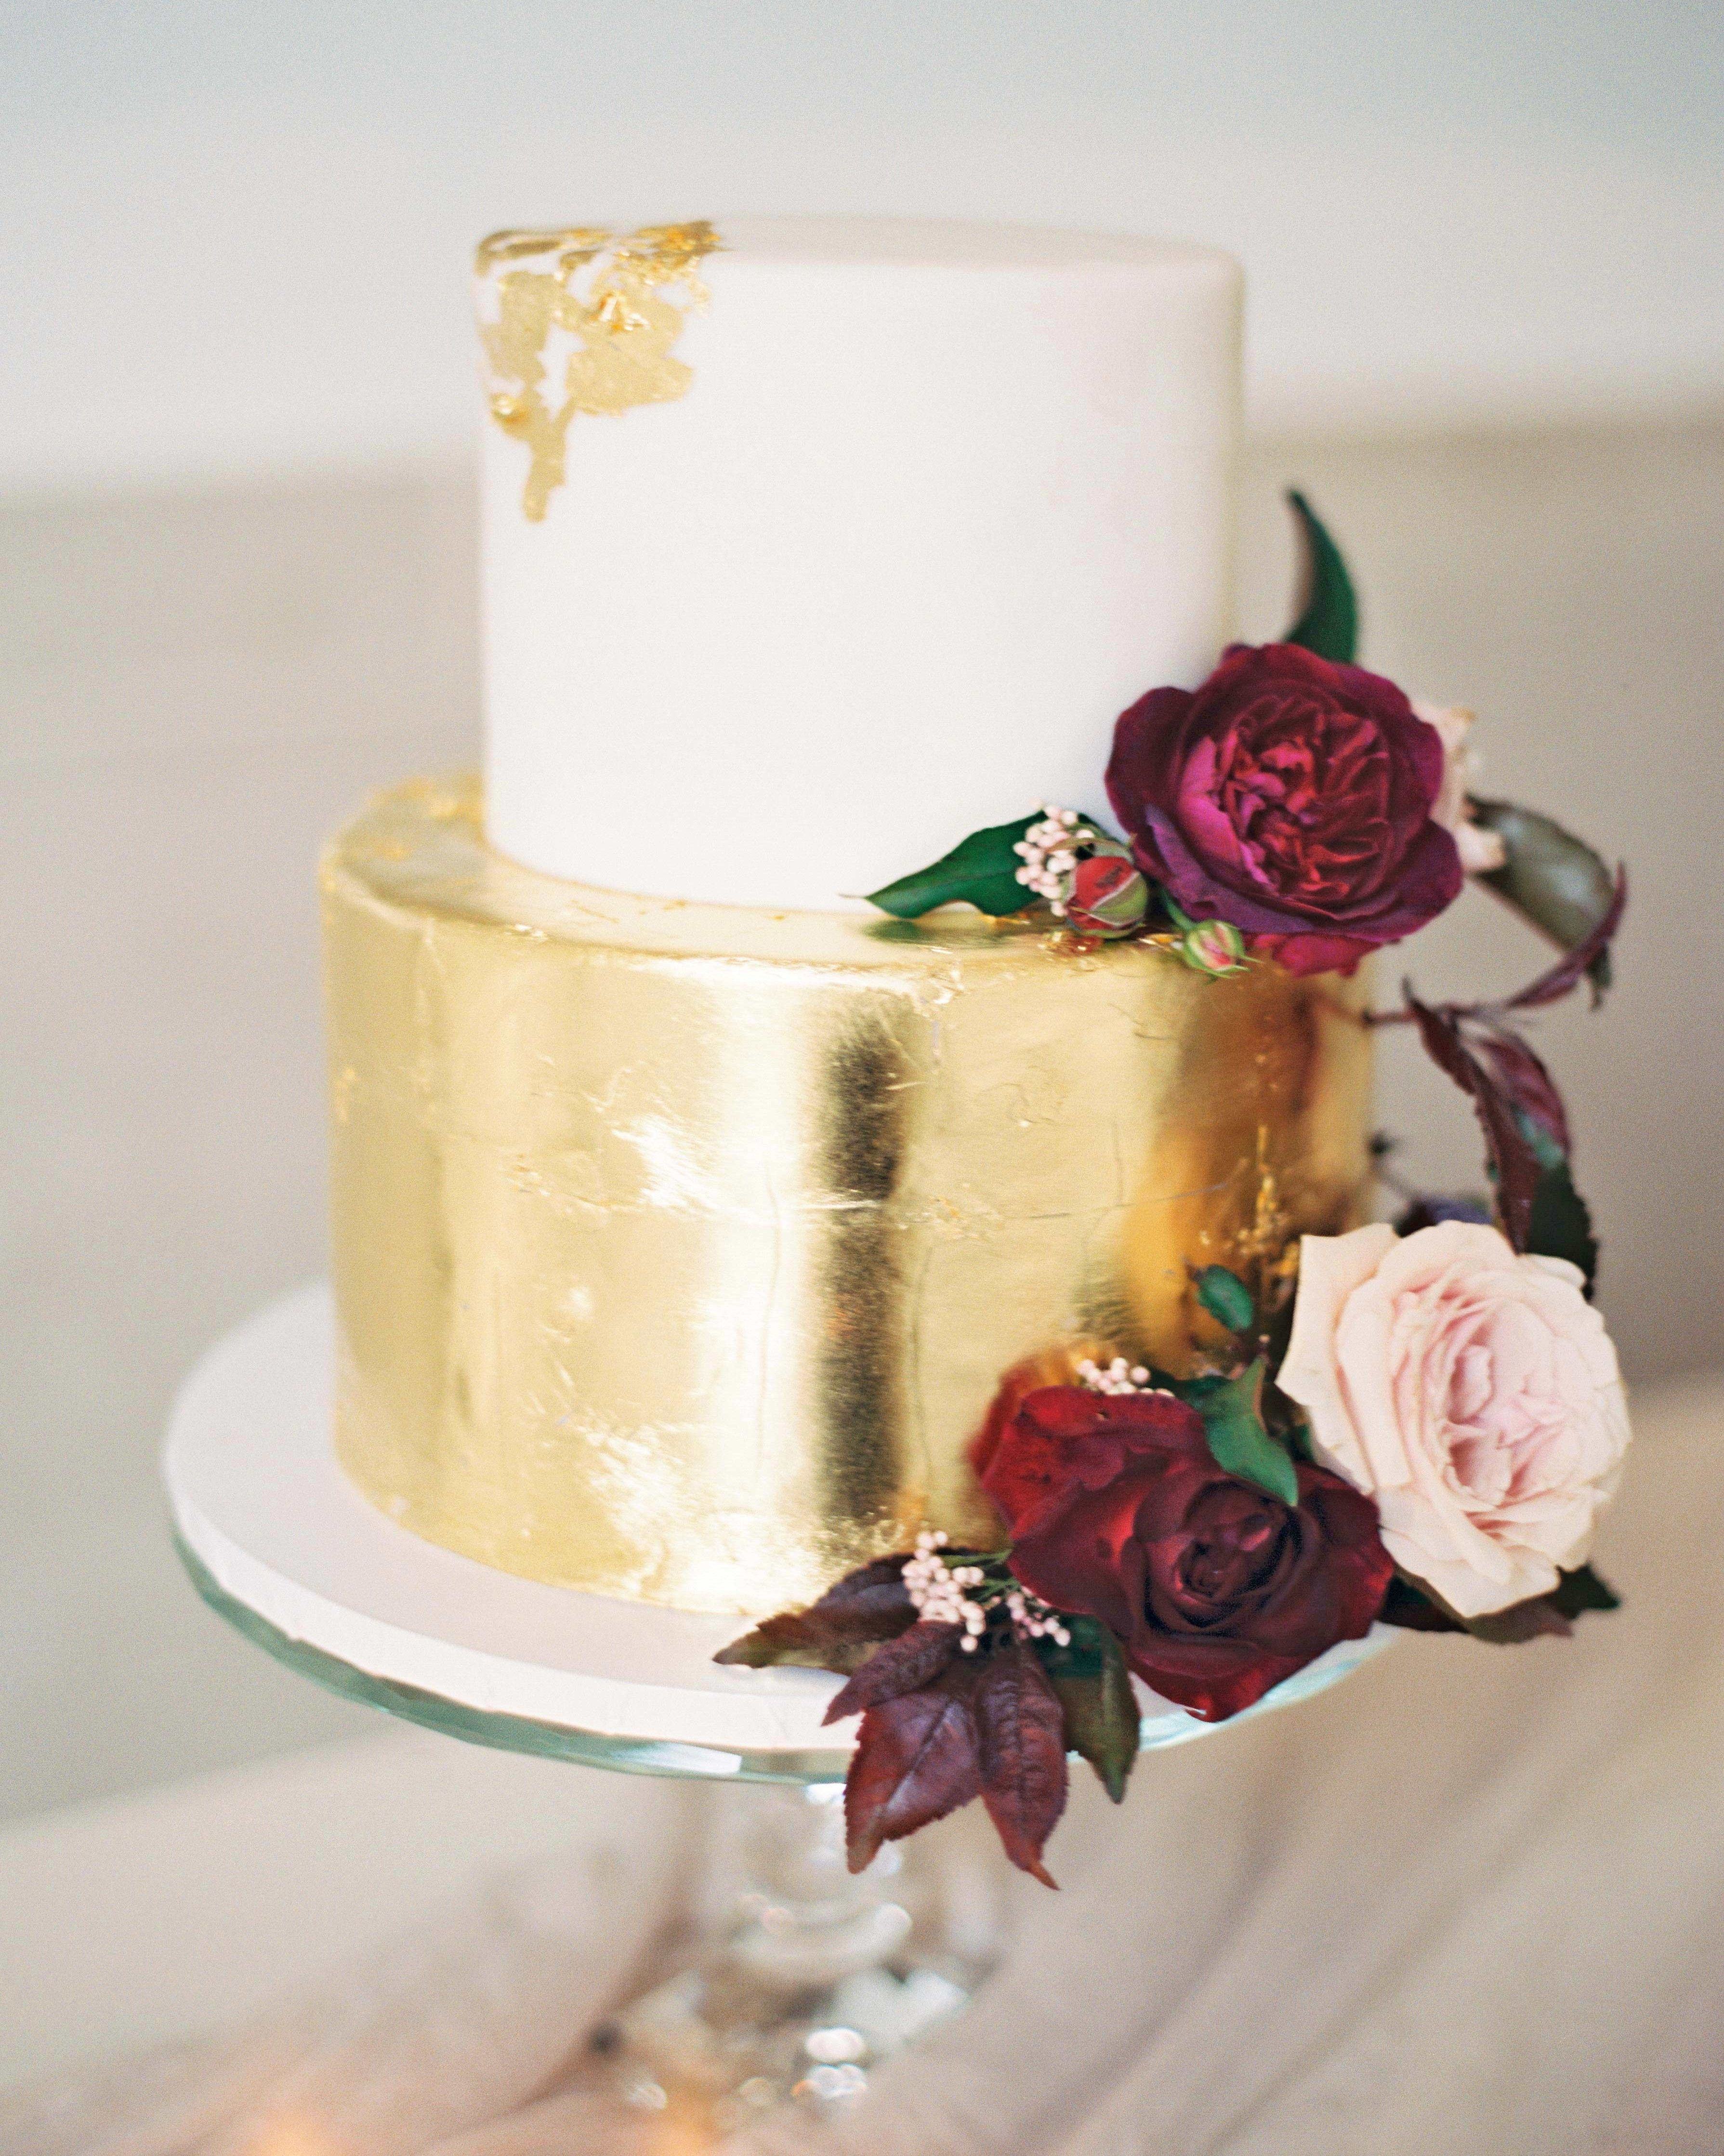 b8cd84b1186 The red-velvet cake by Buttercream Bake Shop gleamed with gold leaf and was  finished with lush blooms.  weddingcake  smallweddingcake   redvelvetweddingcake ...